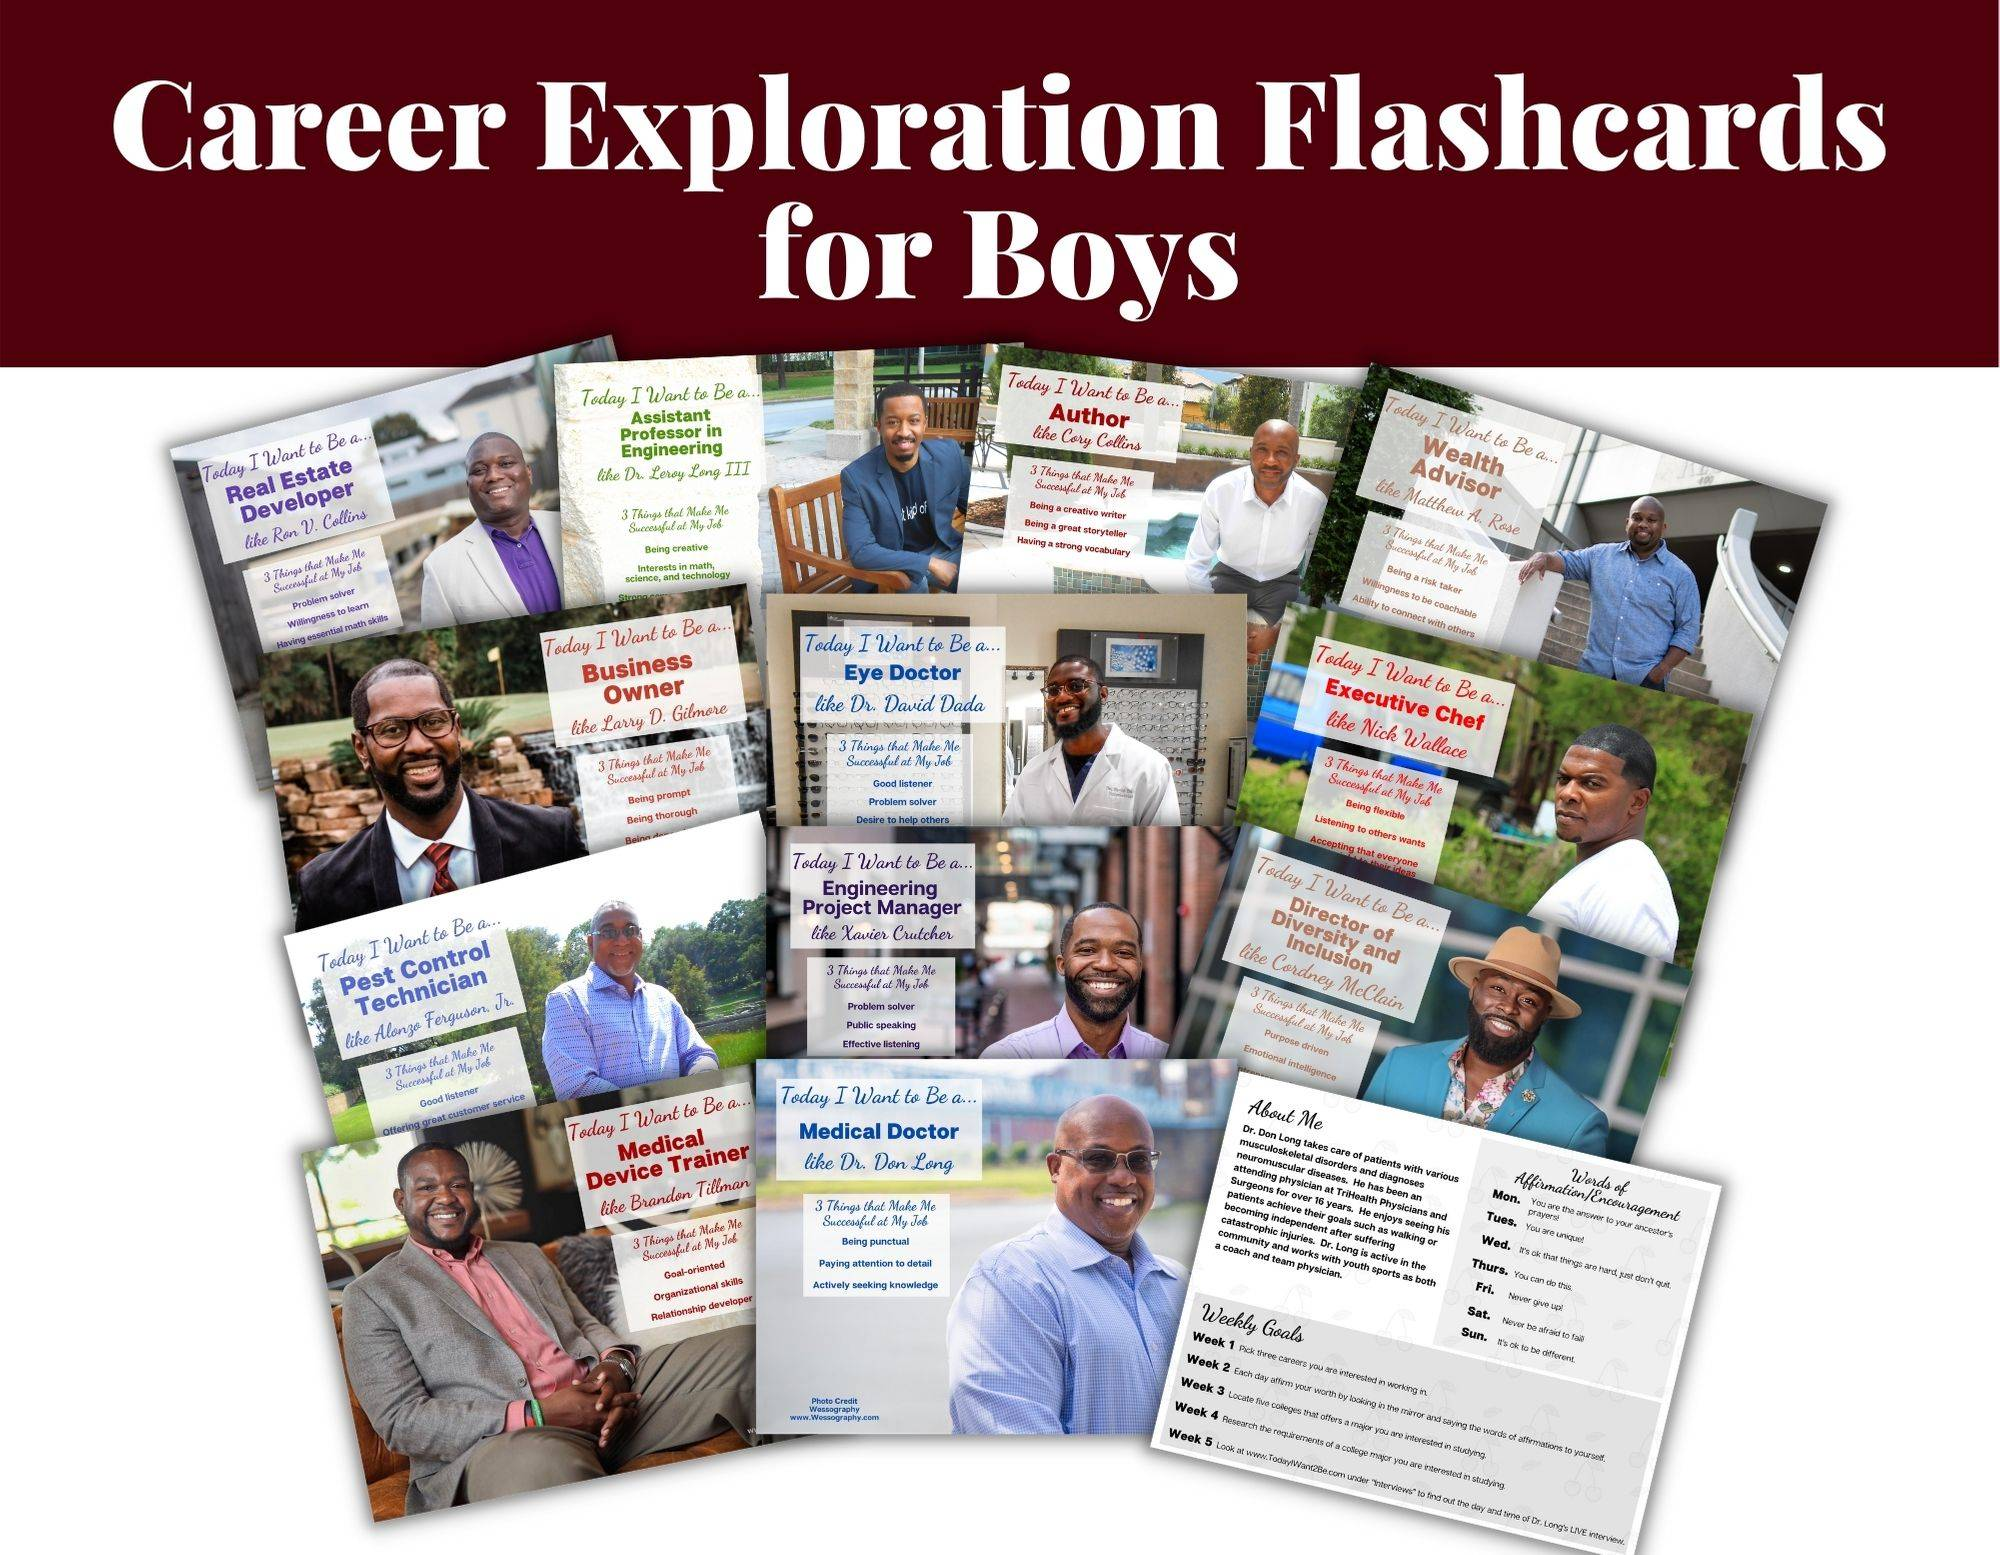 12 career exploration flash cards and resources of black african American men with their job titles